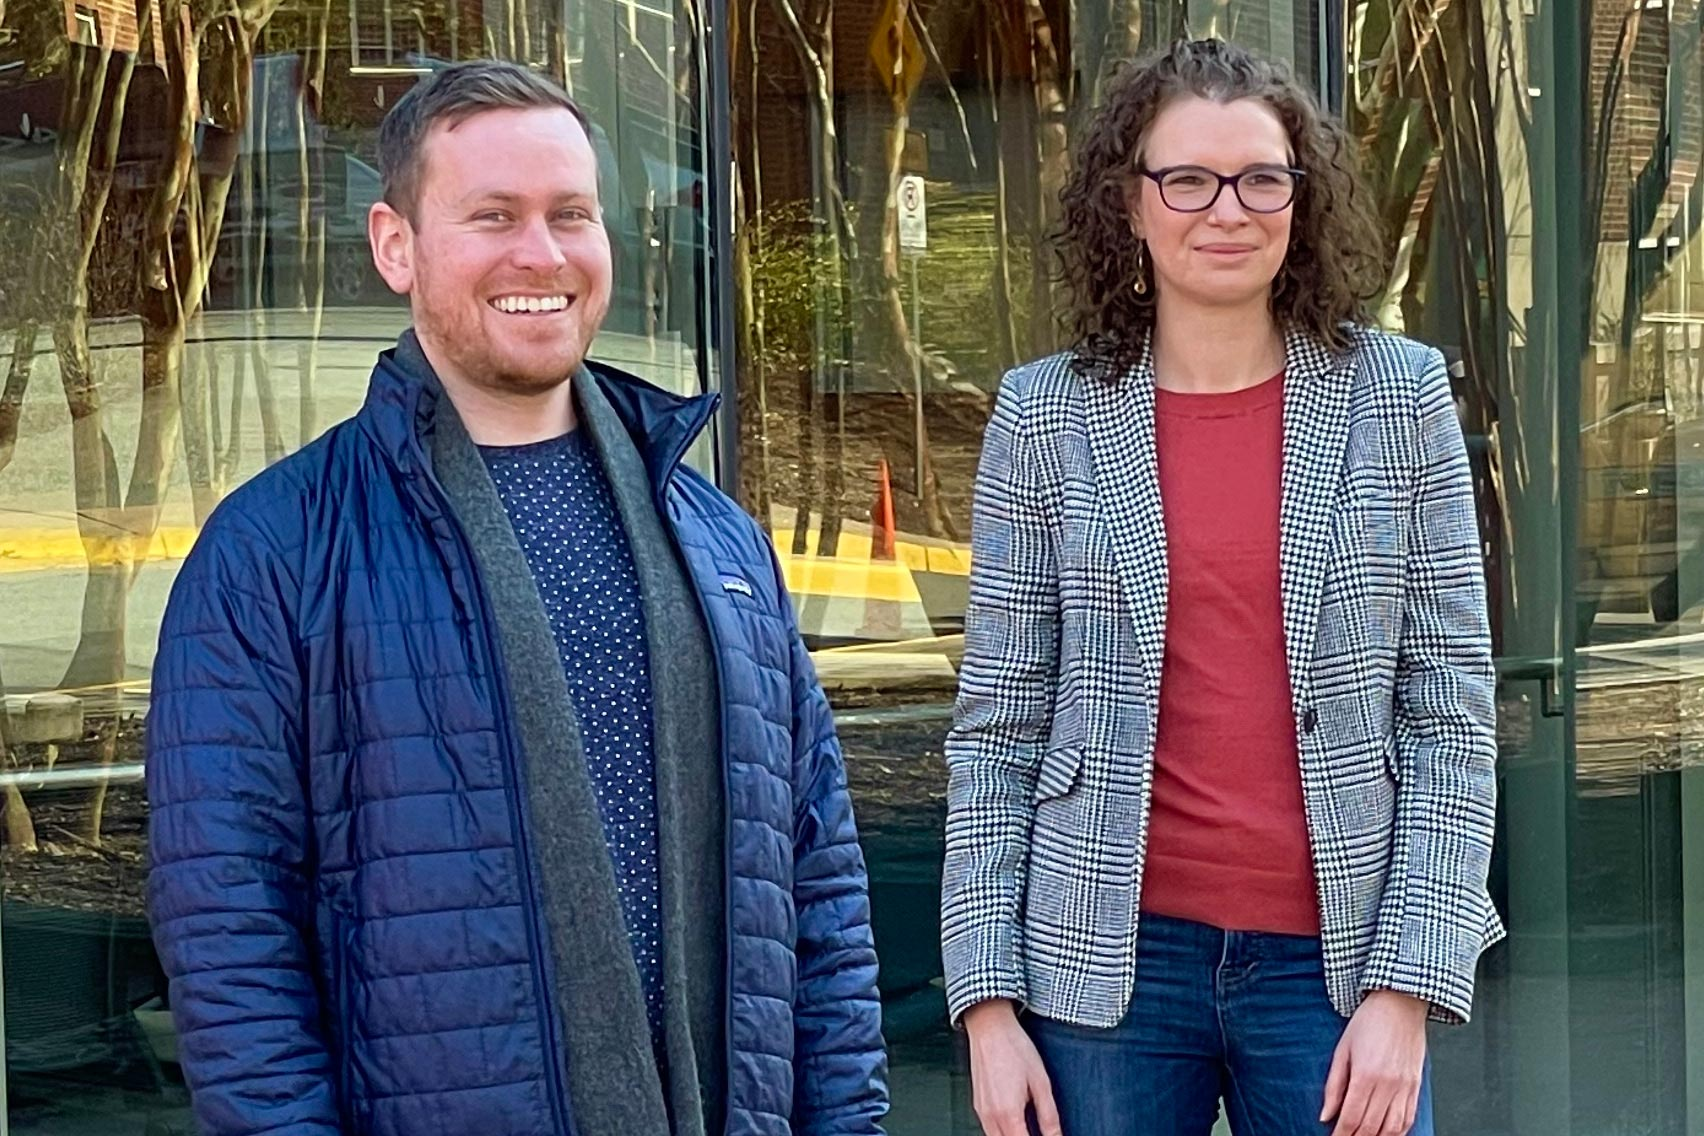 UVA researchers Sean Cuddy and Anna Cliffe are part of a team whose work could lead to new ways to prevent cold sores and herpes-related eye disease from reoccurring. (Photo courtesy Anna Cliffe)